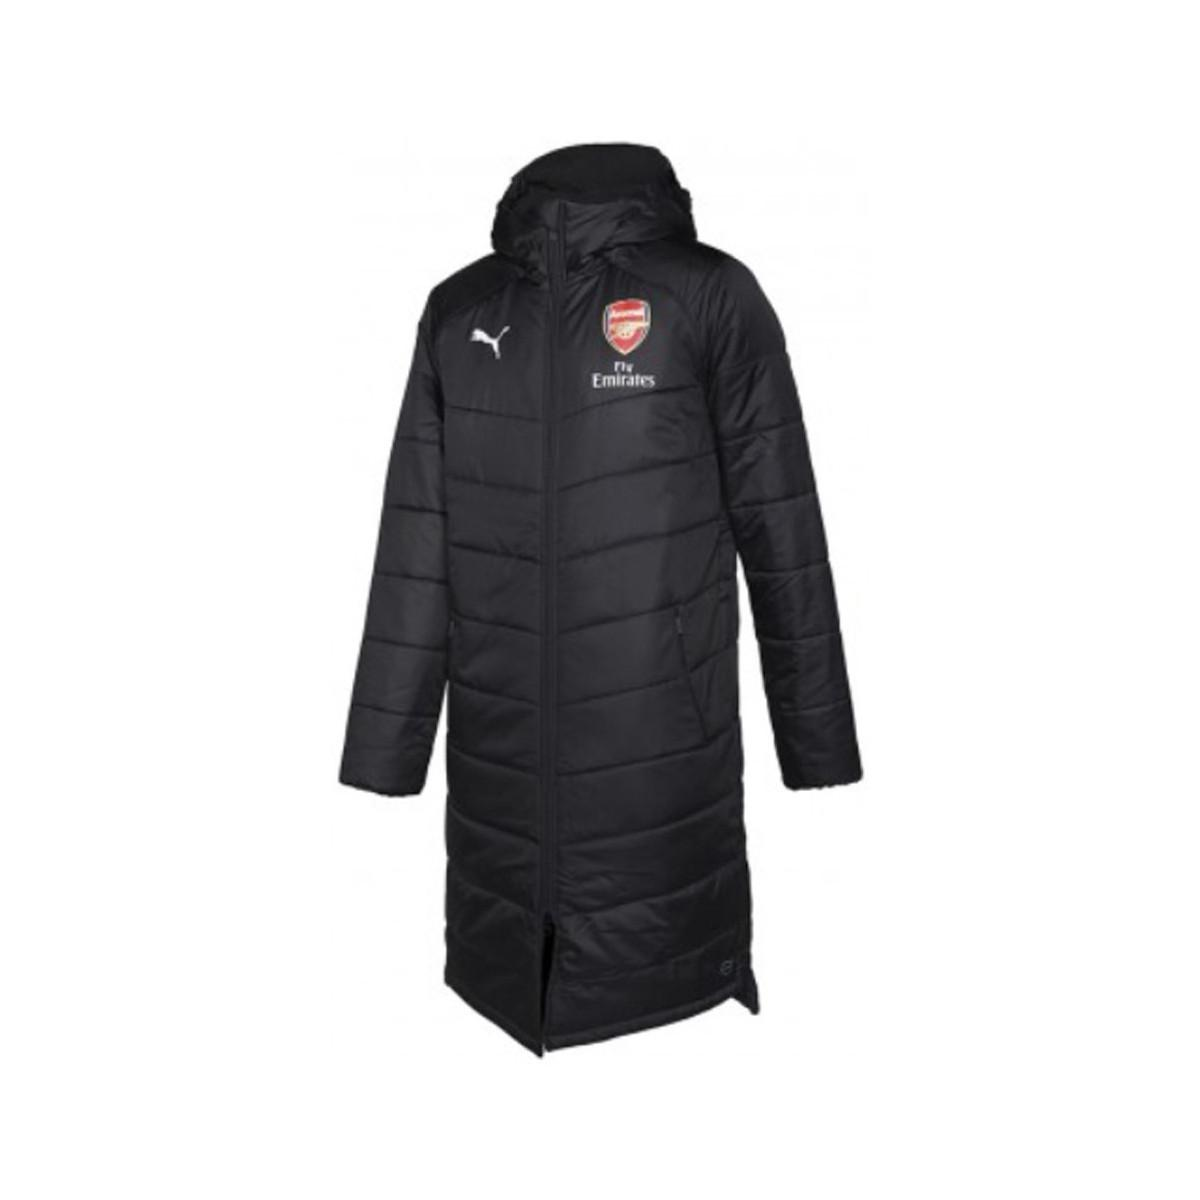 2b7fa391a585 puma-black-2018-2019-Arsenal-Long-Bench-Jacket-Womens-Jacket-In-Black.jpeg